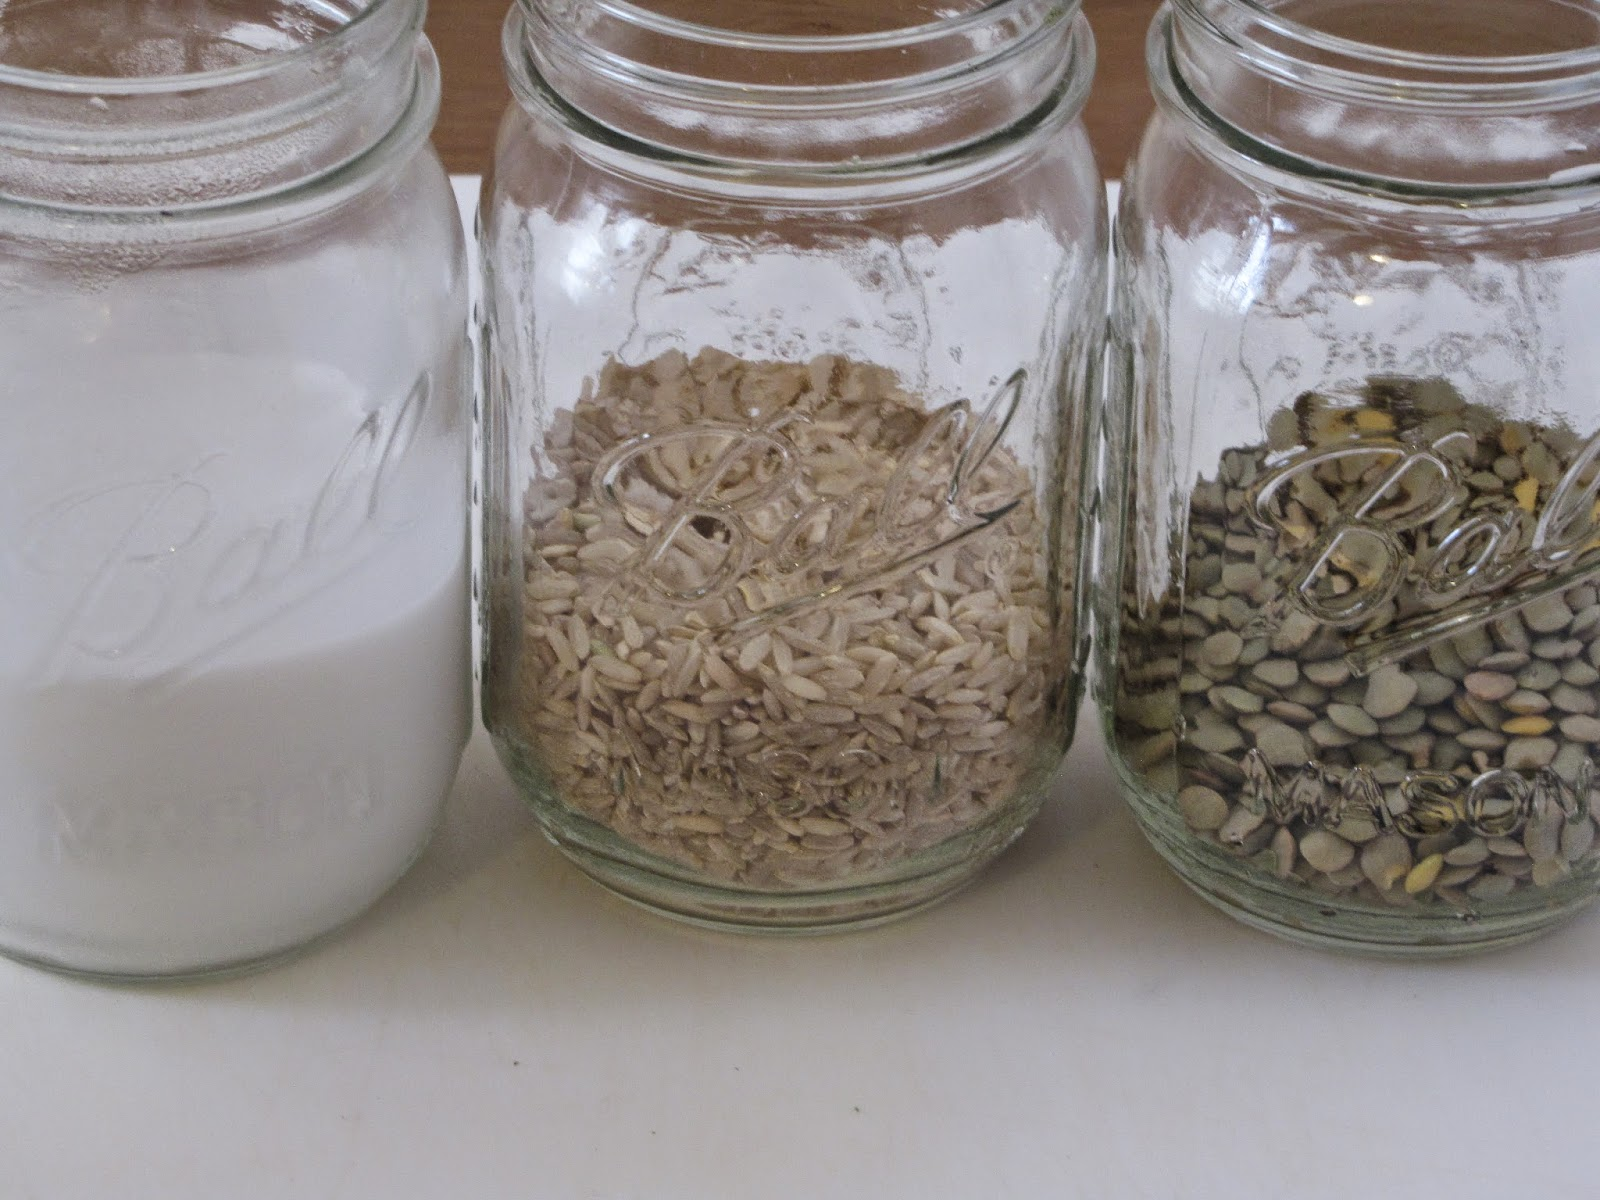 coconut milk, brown rice and lentils measured out into mason jars